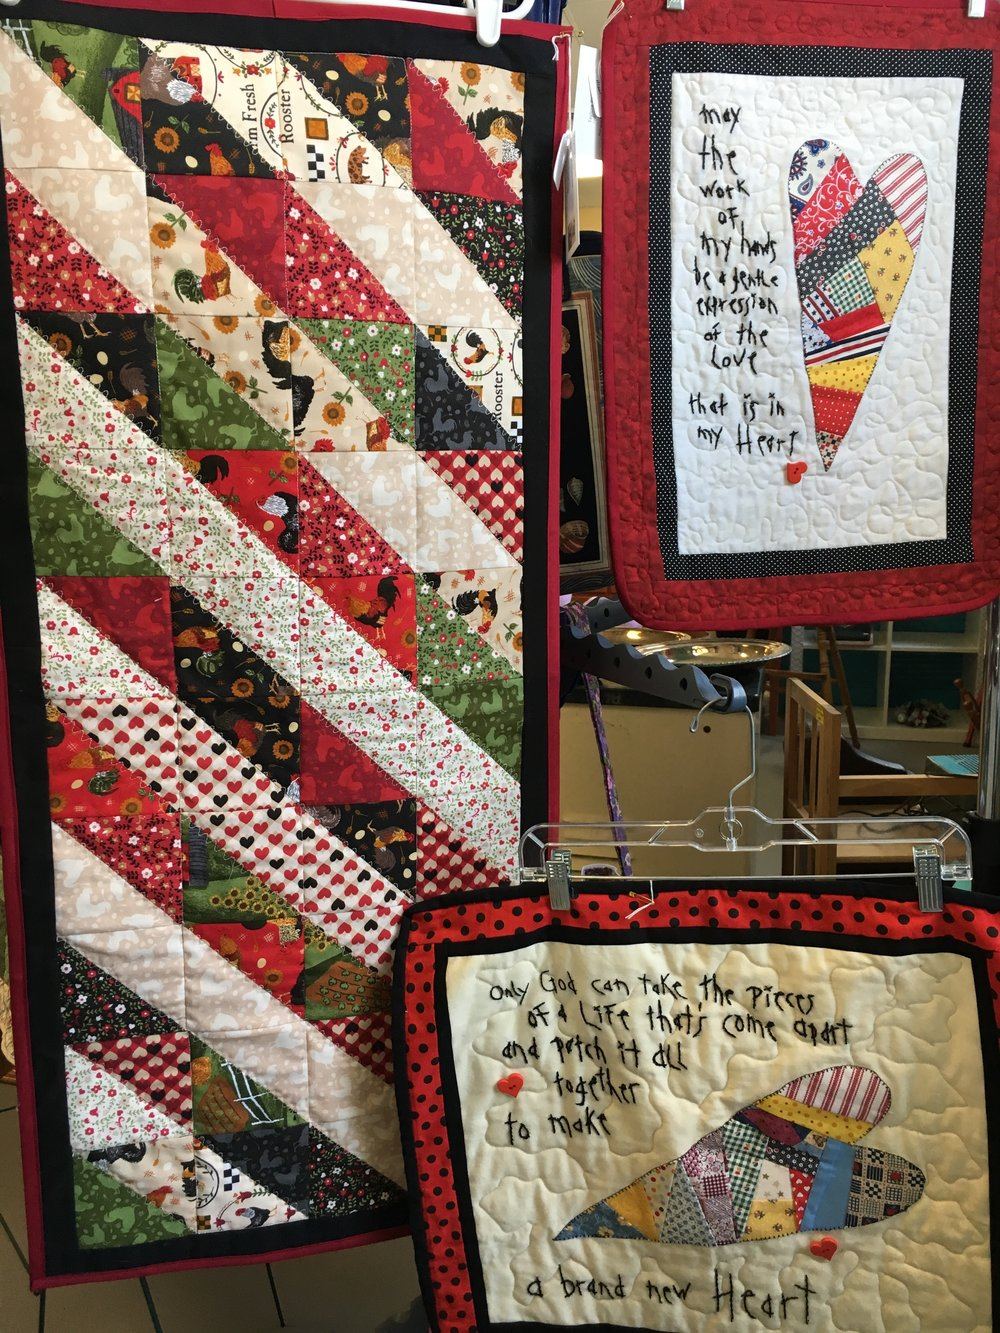 Taylor's Teddies - Quilts, bears, and other gifts made to order.